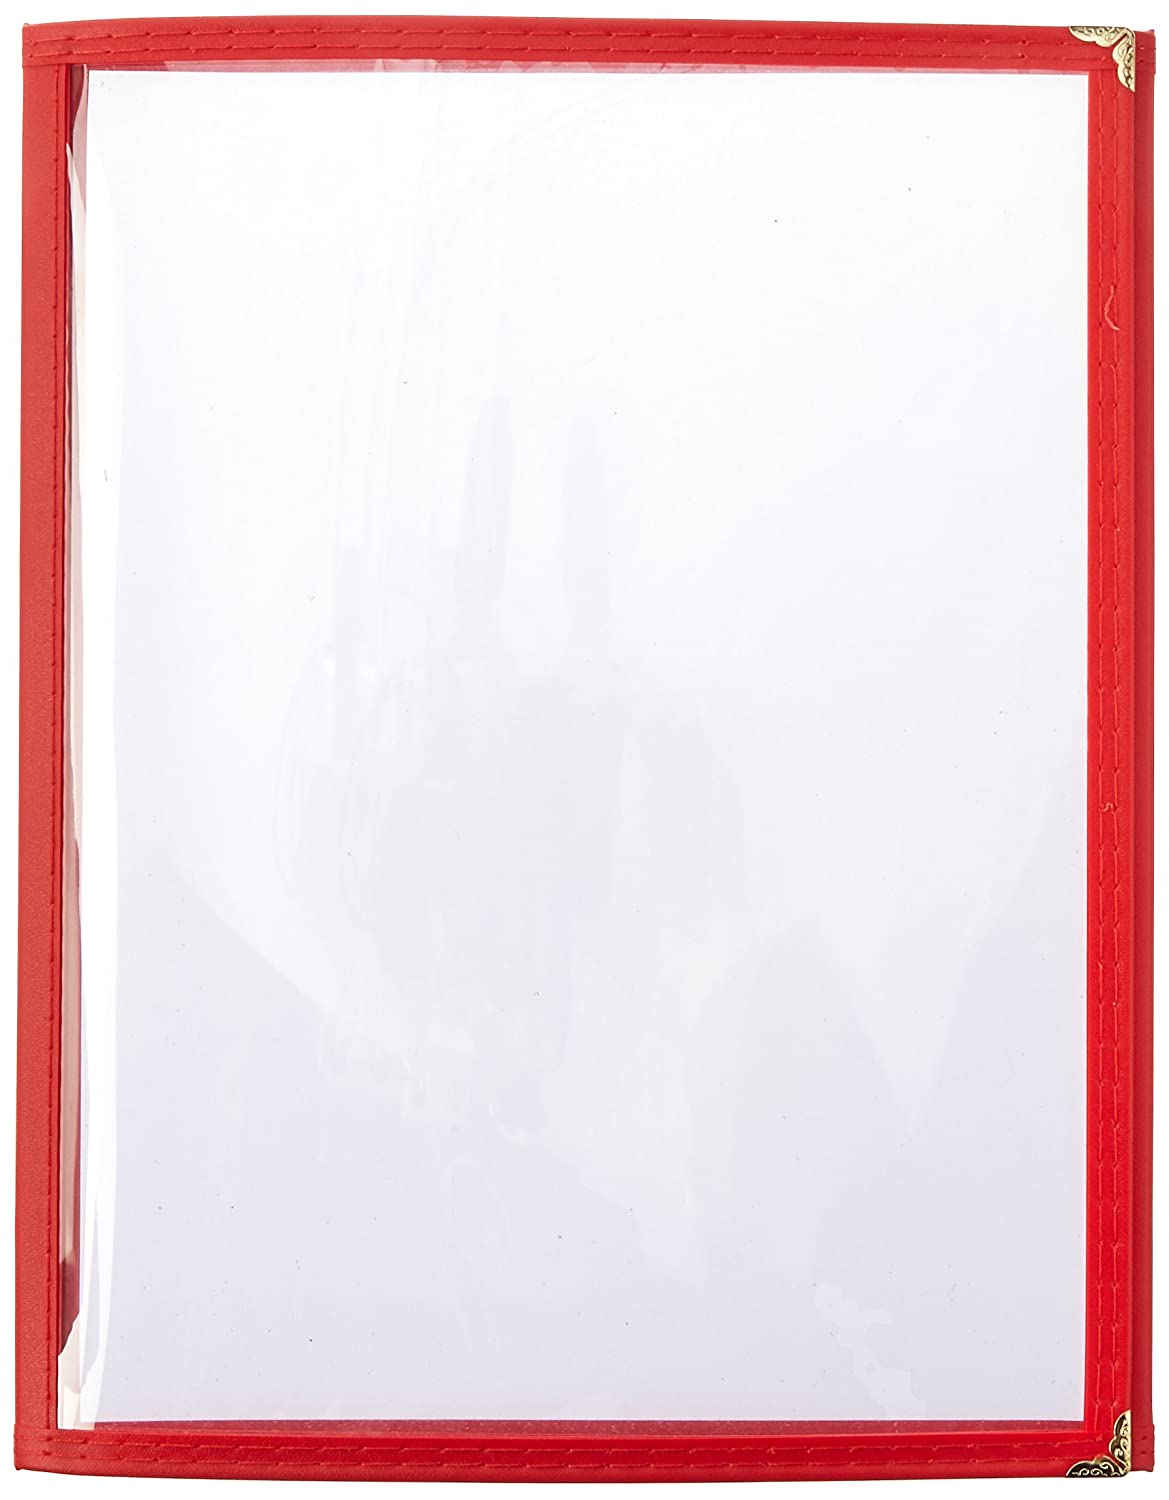 Red 12-Inch x 9.5-Inch Winco Double Fold Menu Cover